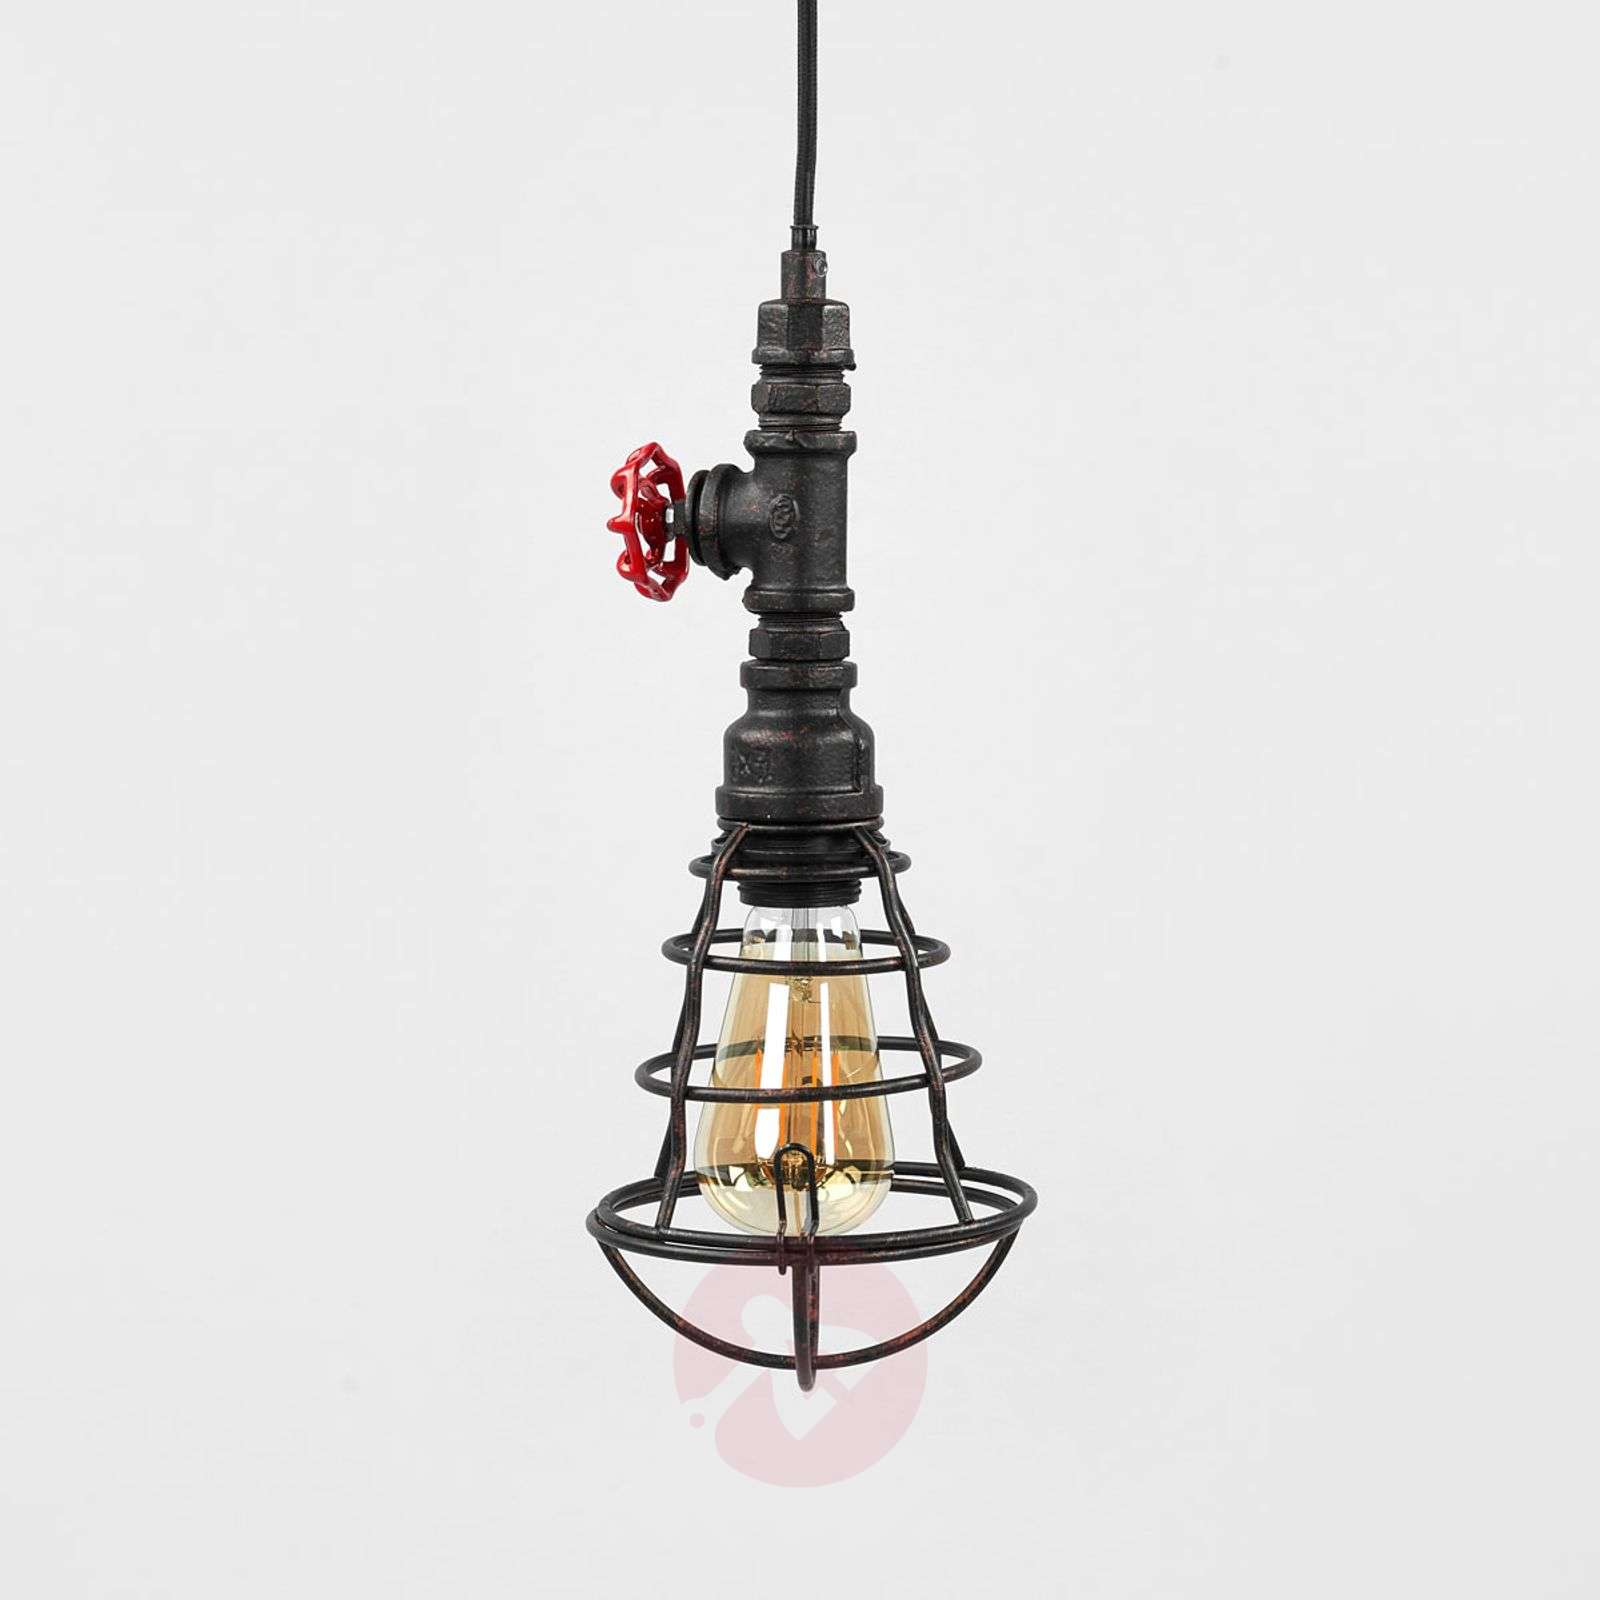 Tap pendant lamp with cage-9634047-02